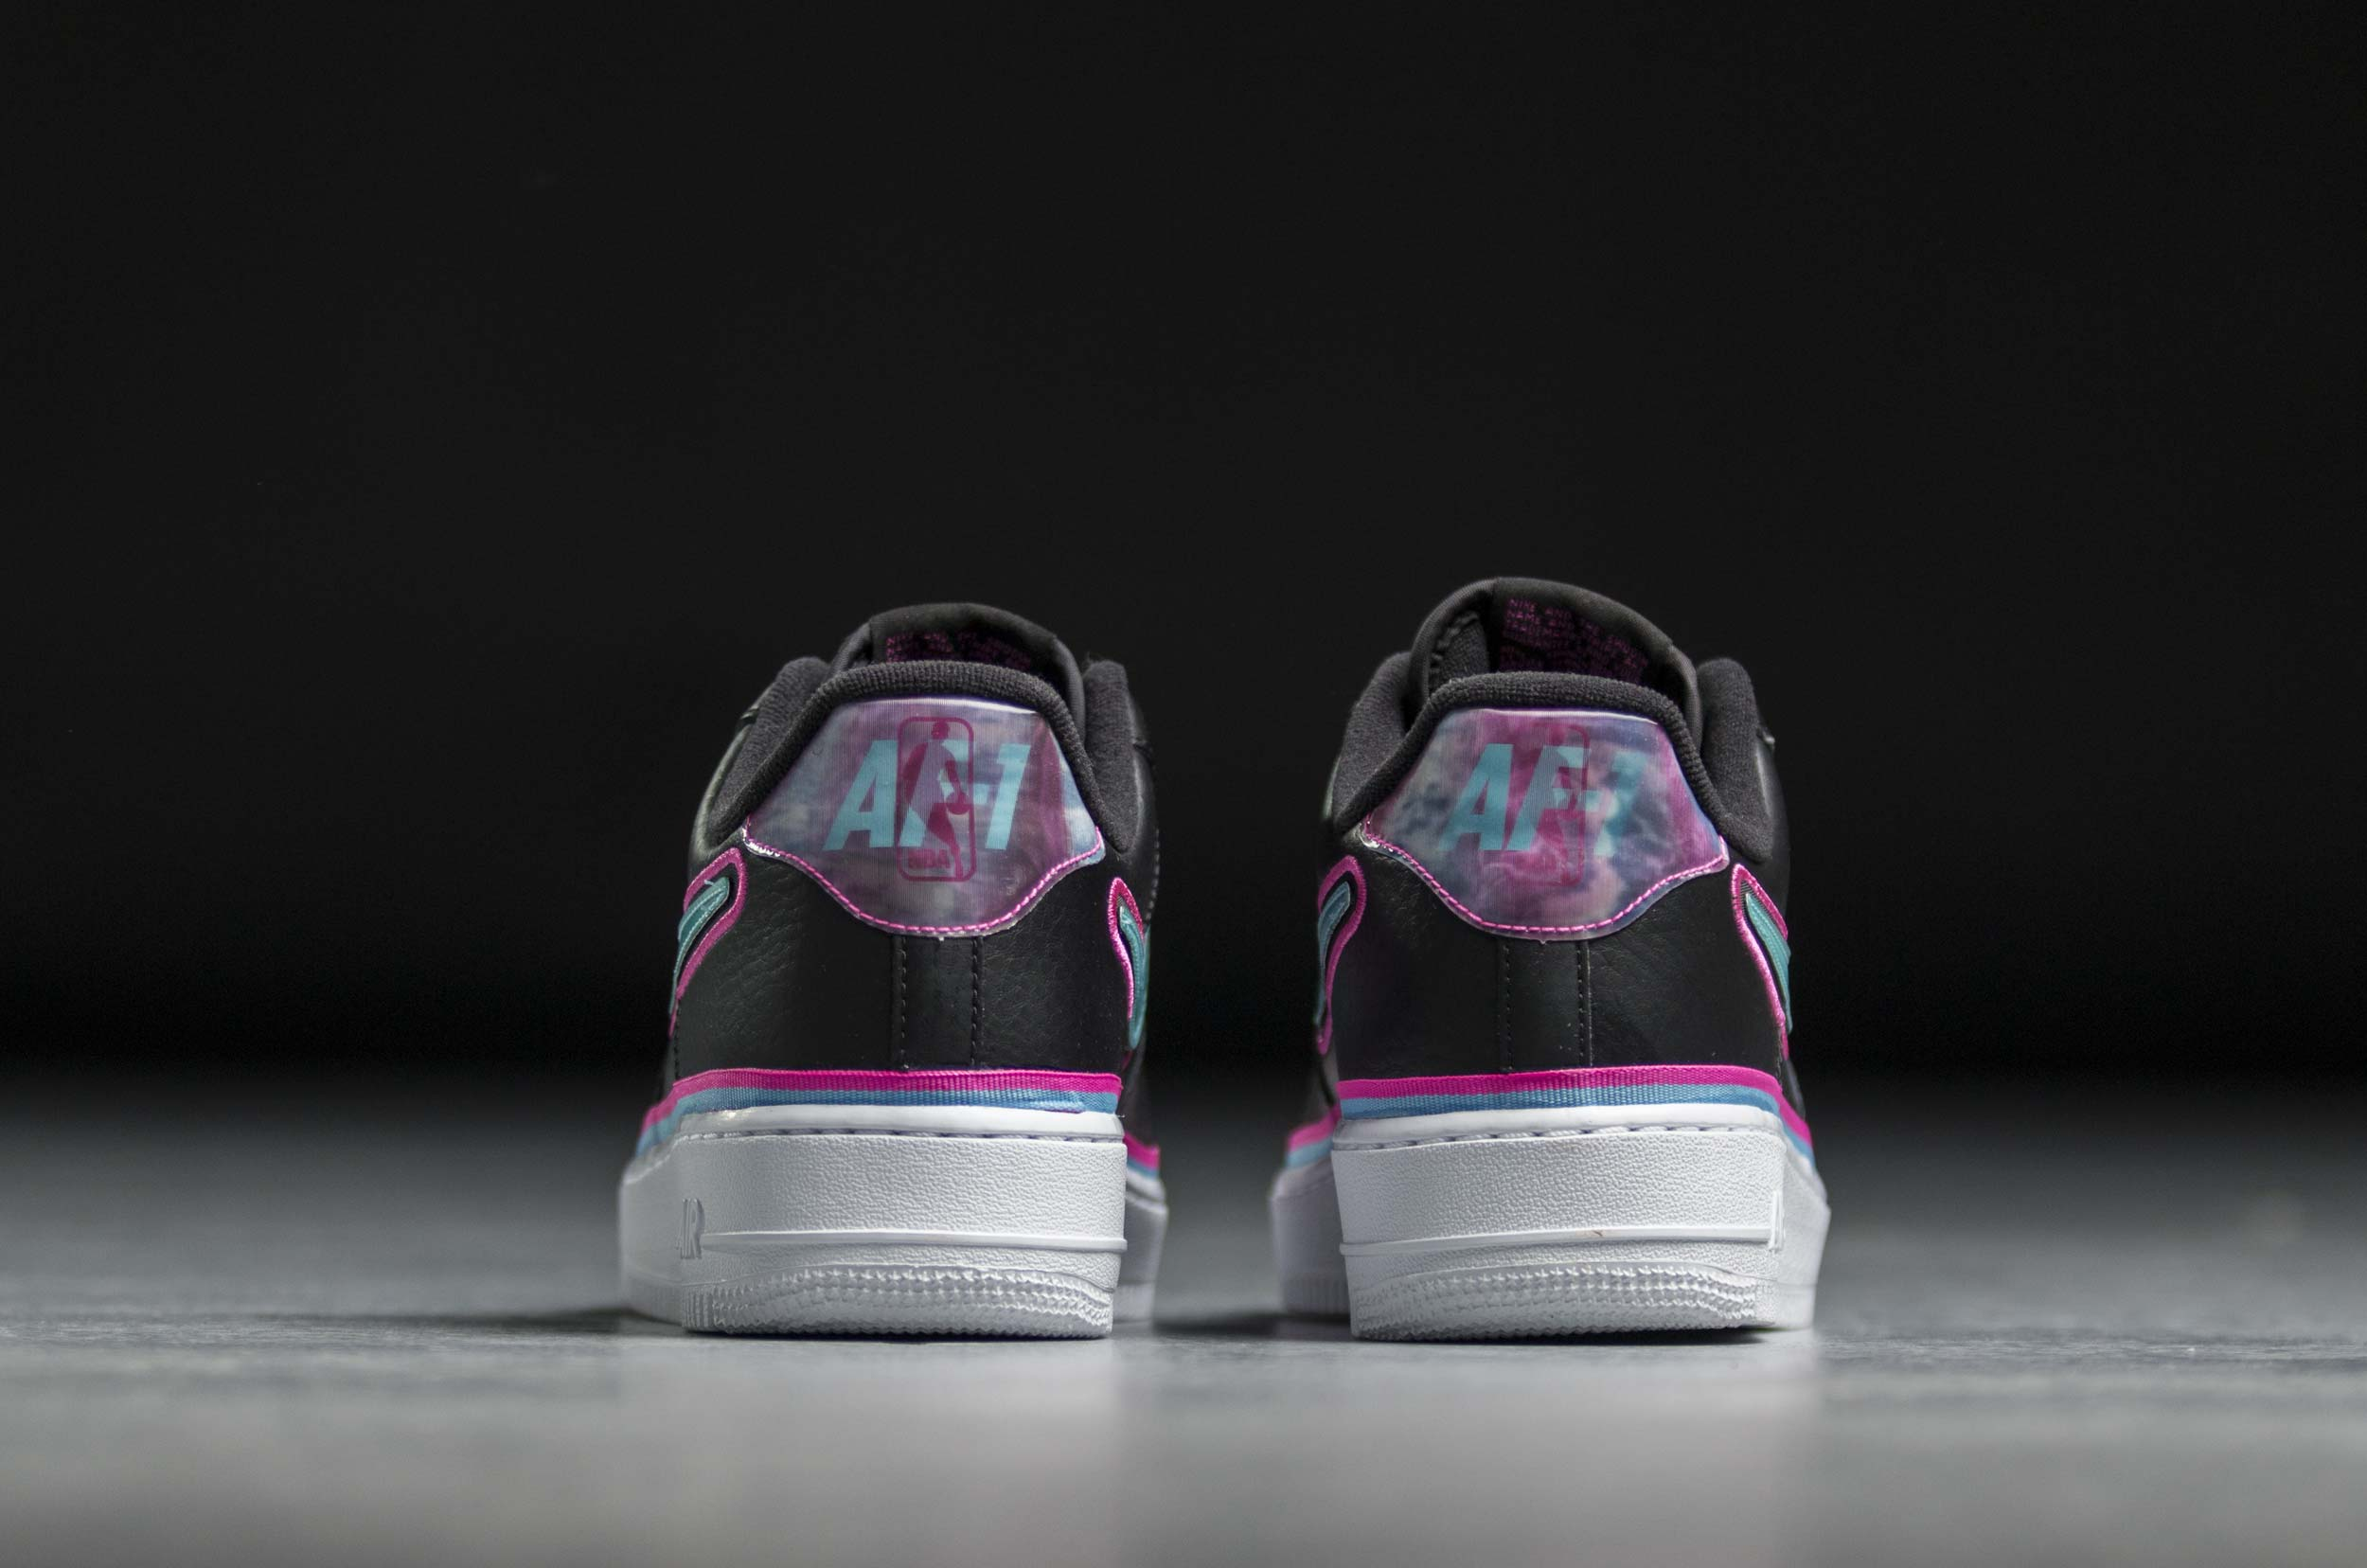 NIKE AIR FORCE 1 '07 LV8 SPORT AJ7748-002 Μαύρο